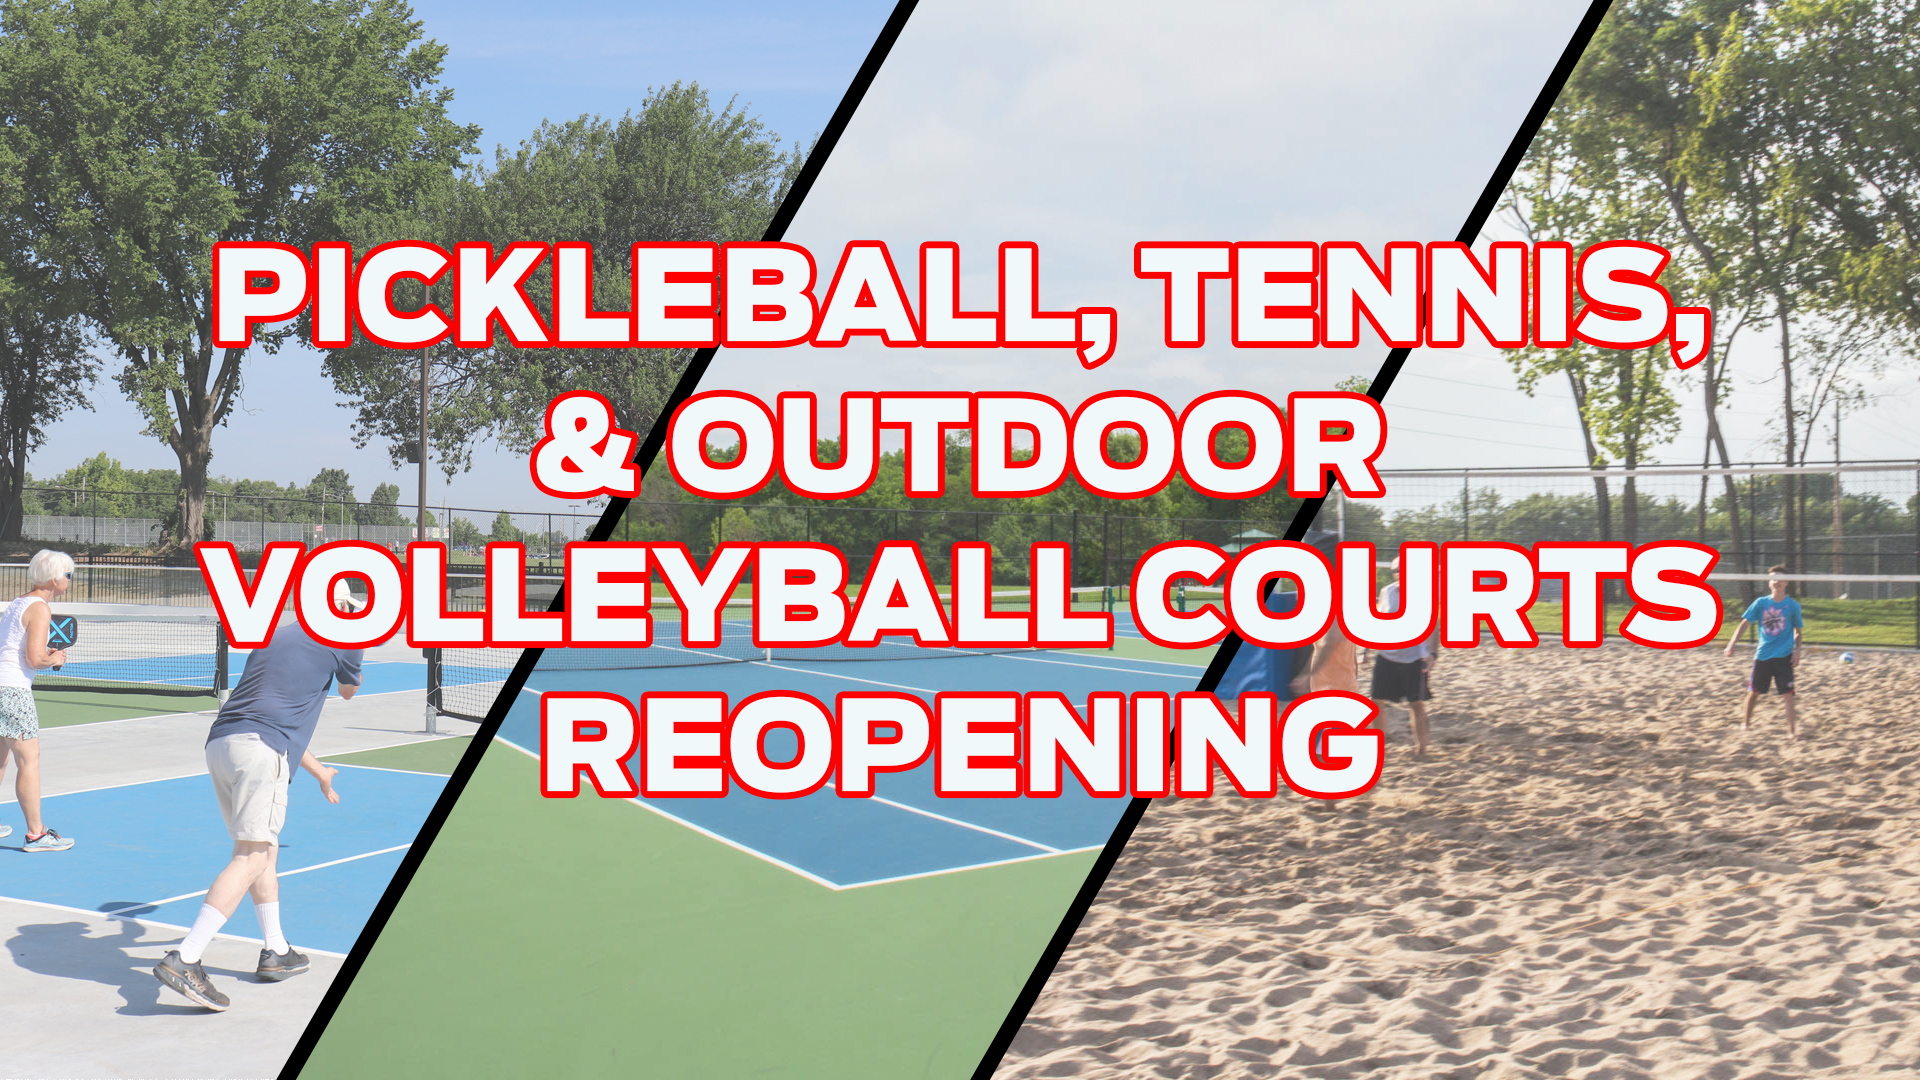 Pickleball, tennis, and outdoor sand volleyball courts reopened